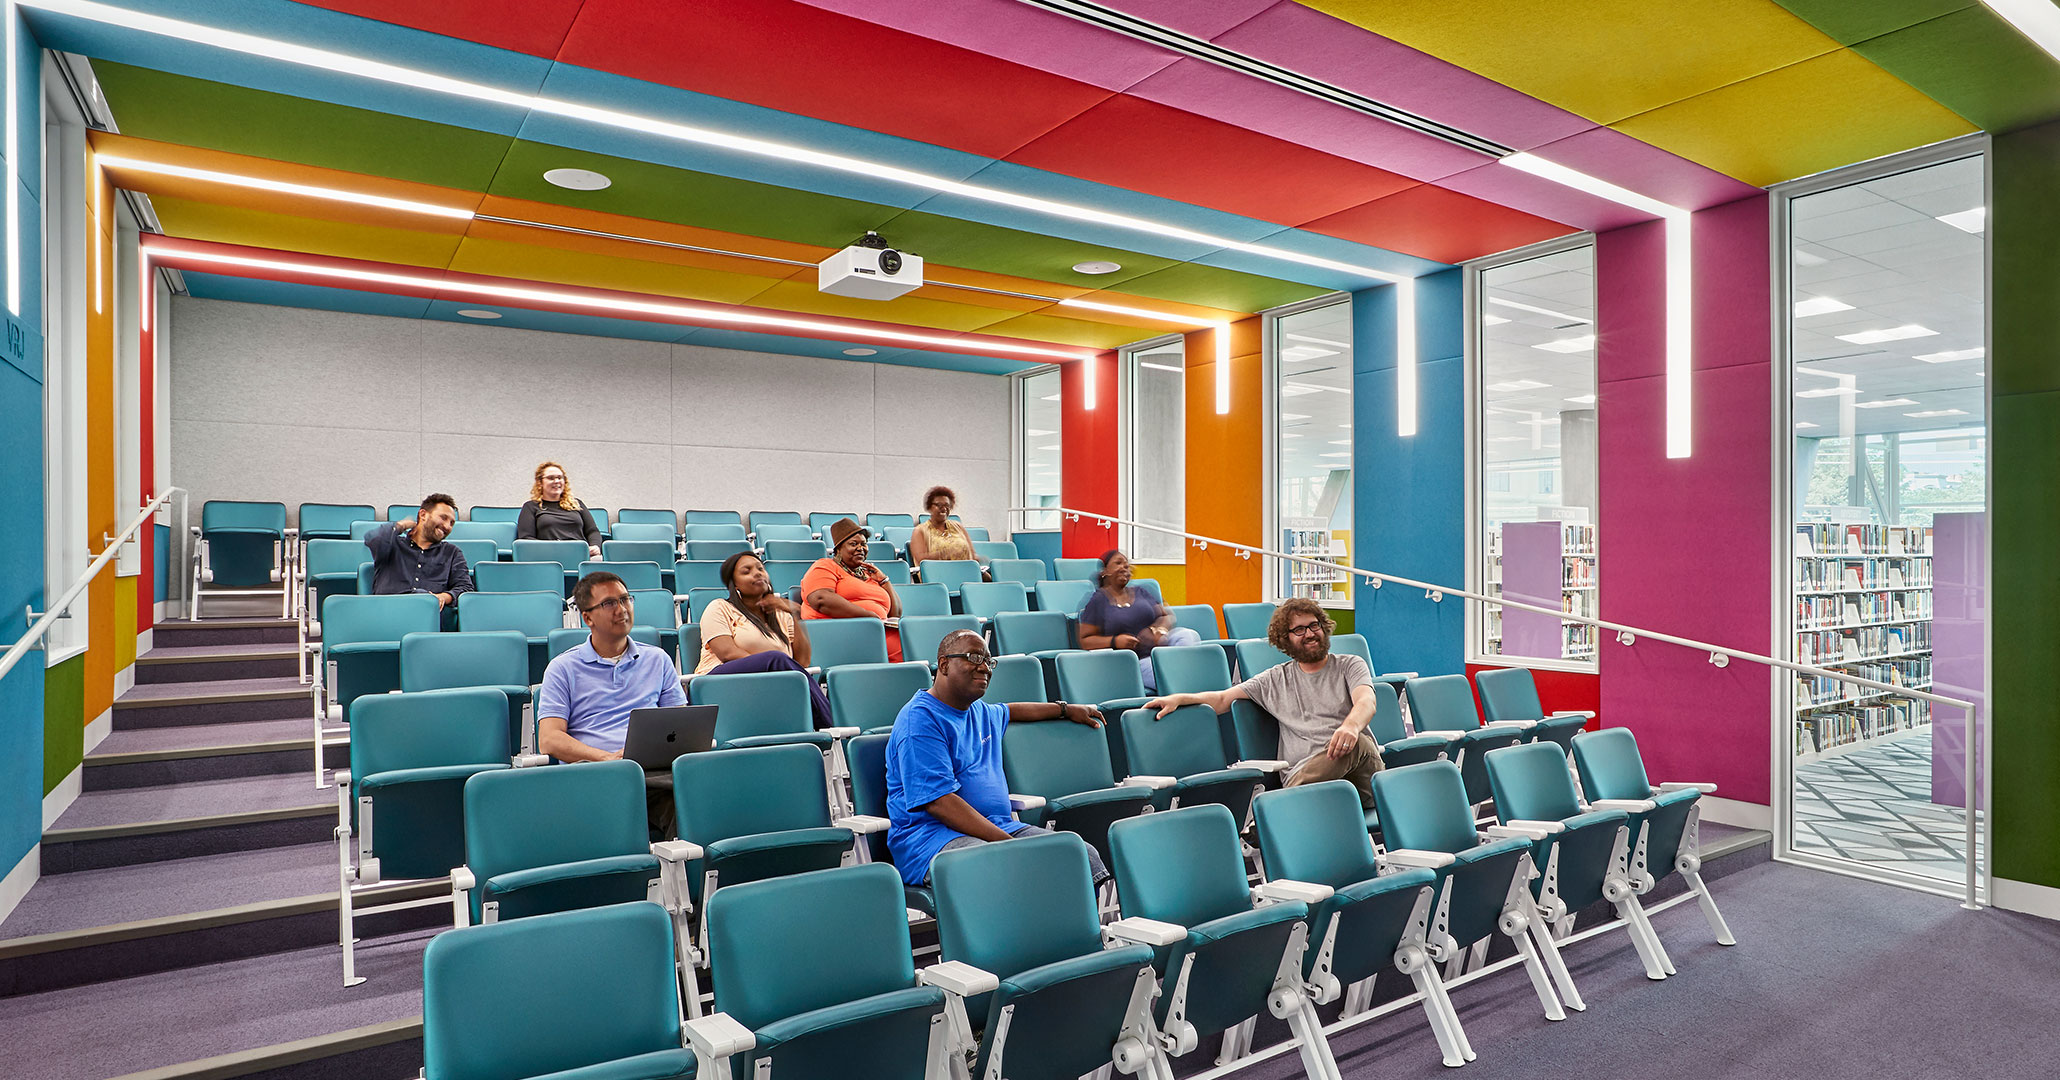 Richland County Library worked with Boudreaux architects to design colorful stadium seating theater for Richland Libraries.